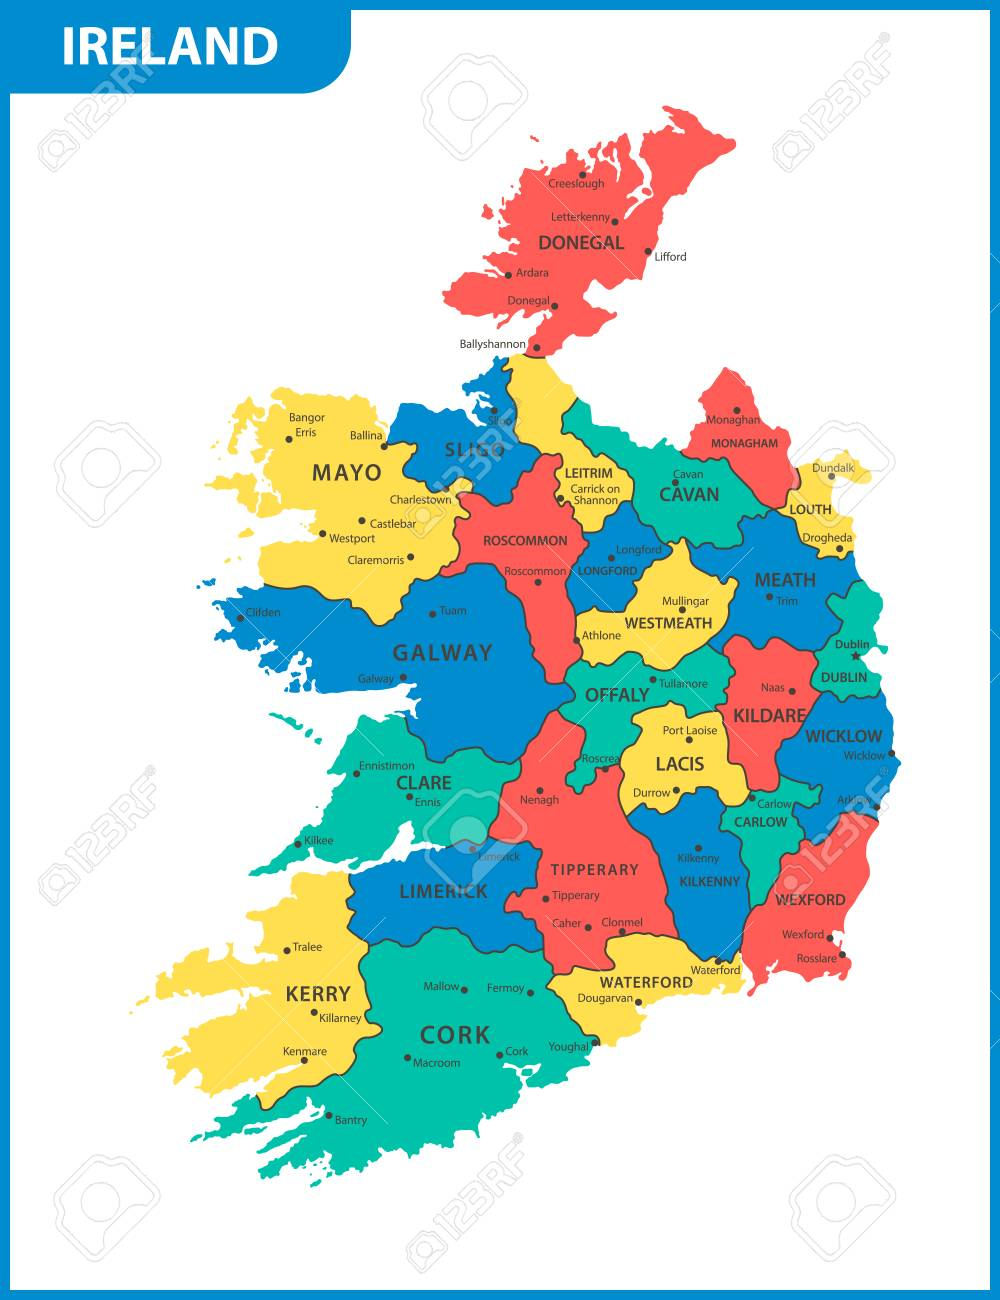 Cities In Ireland Map.The Detailed Map Of The Ireland With Regions Or States And Cities